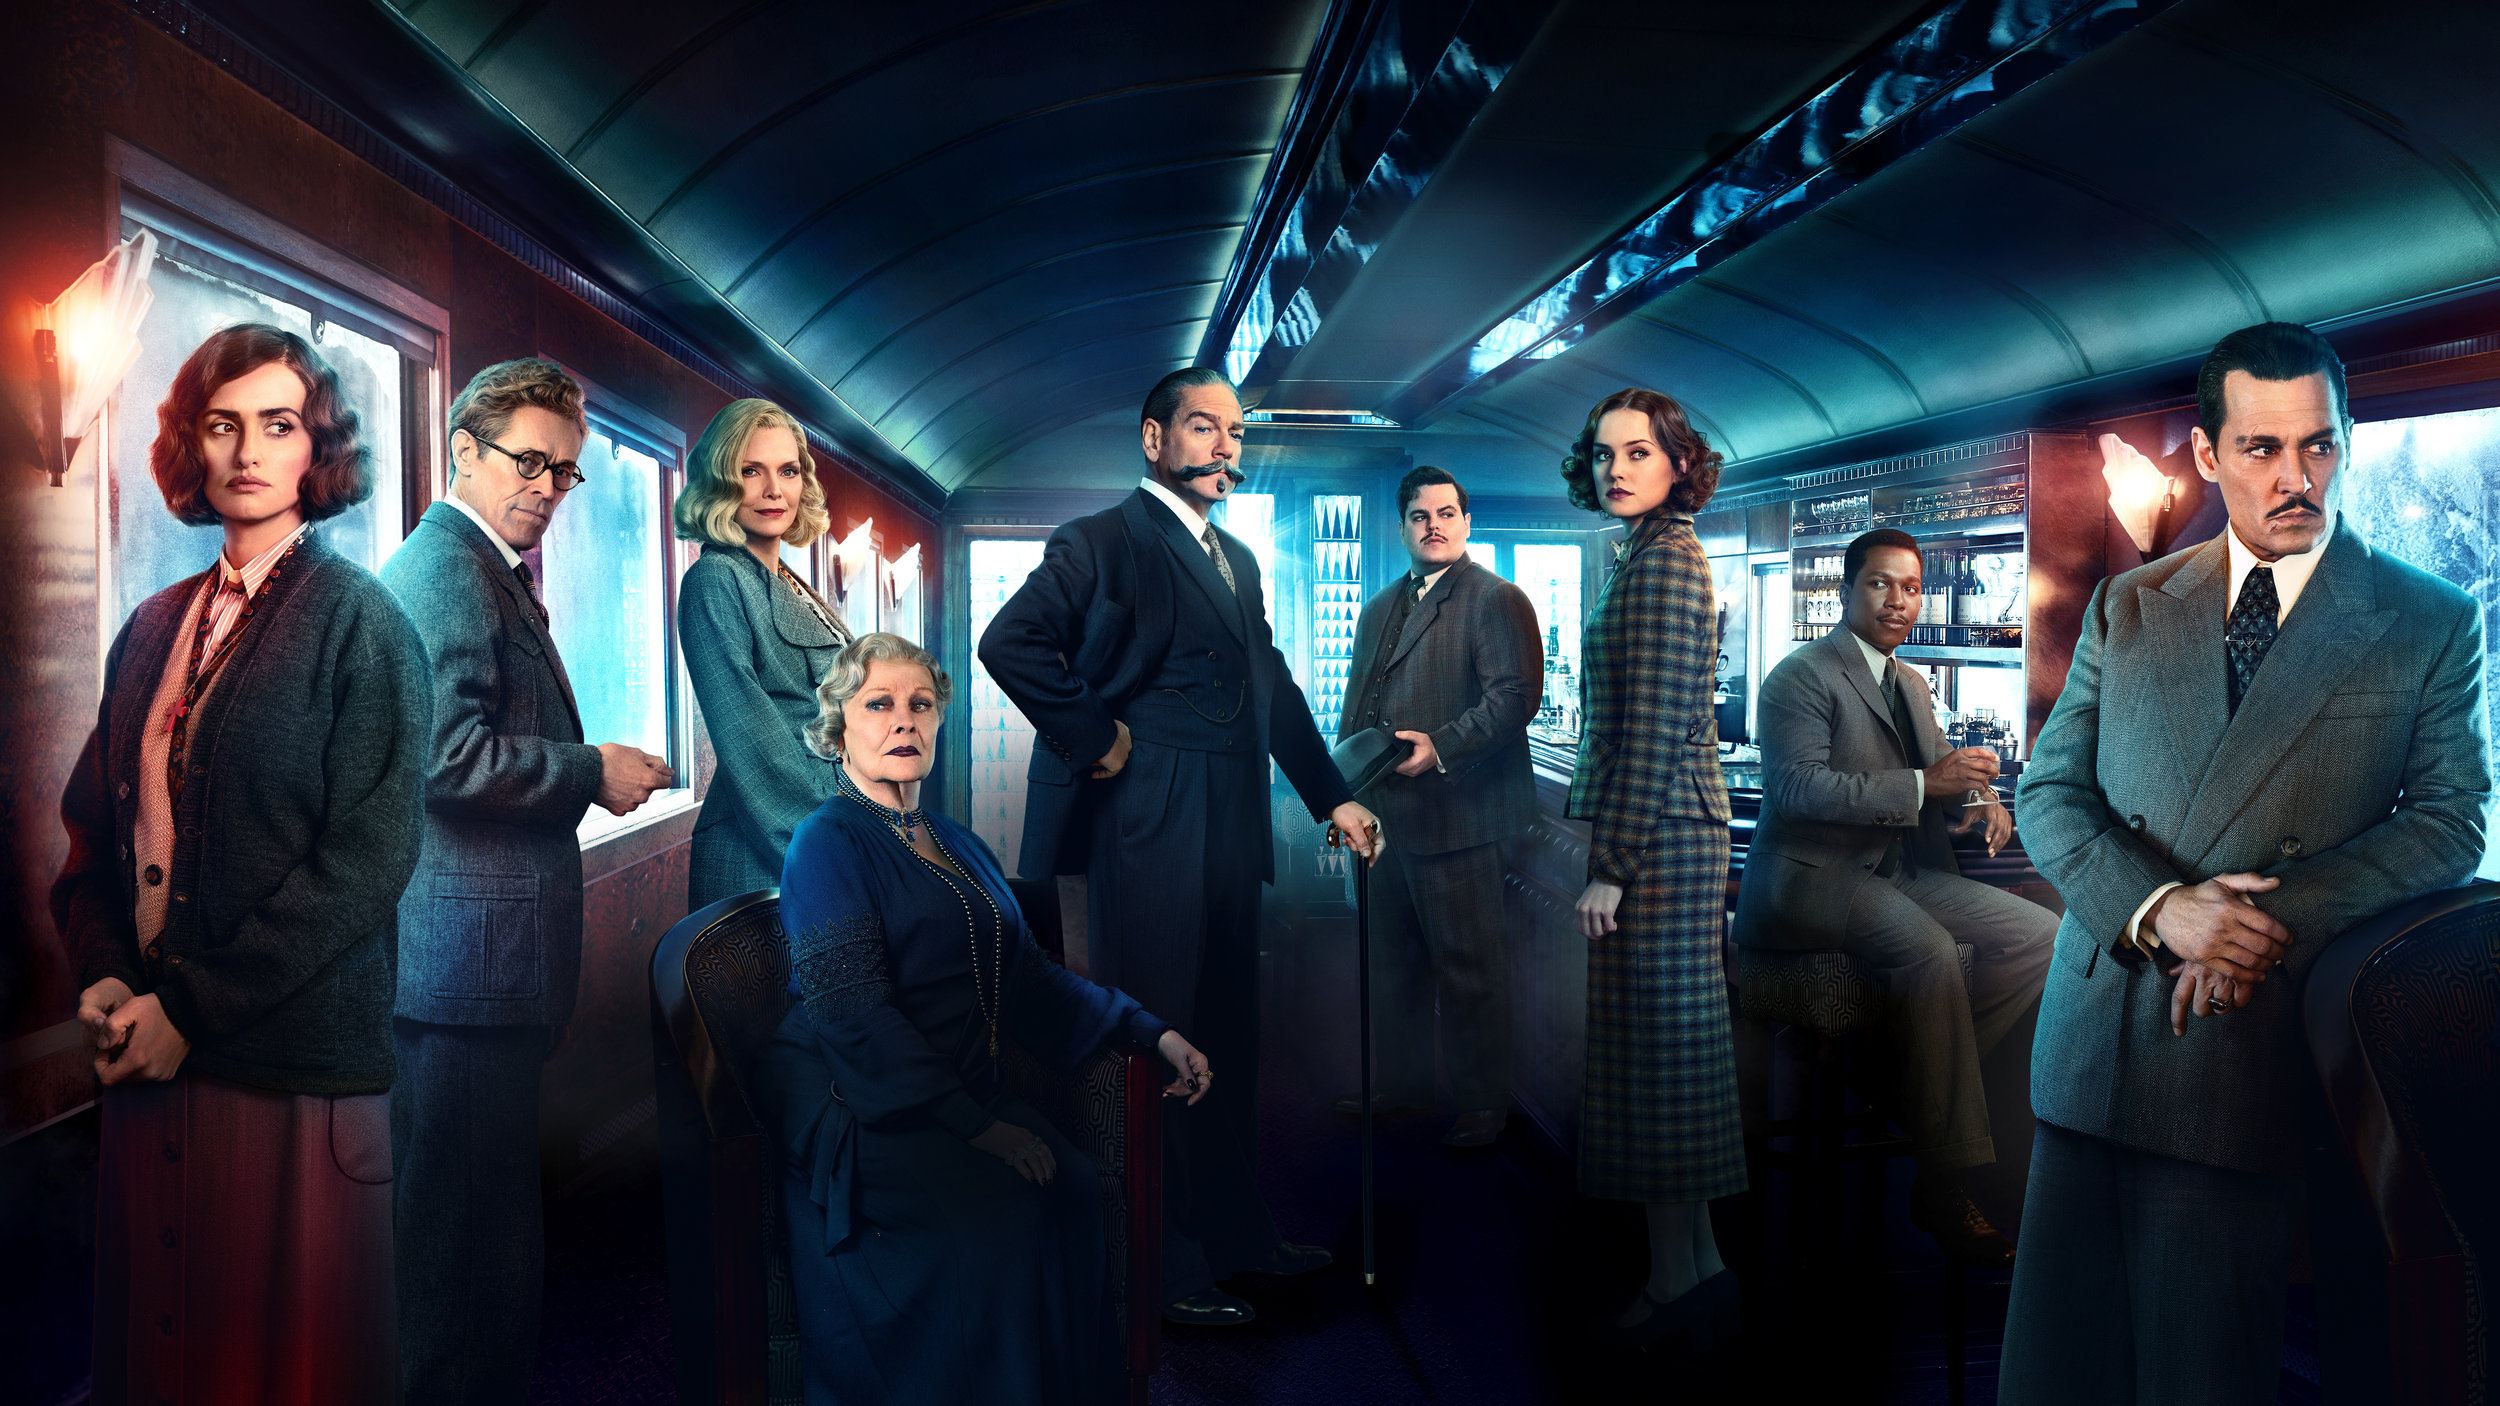 murder-on-the-orient-express-7680x4320-crime-mystery-cast-4k-8k-10415.jpg